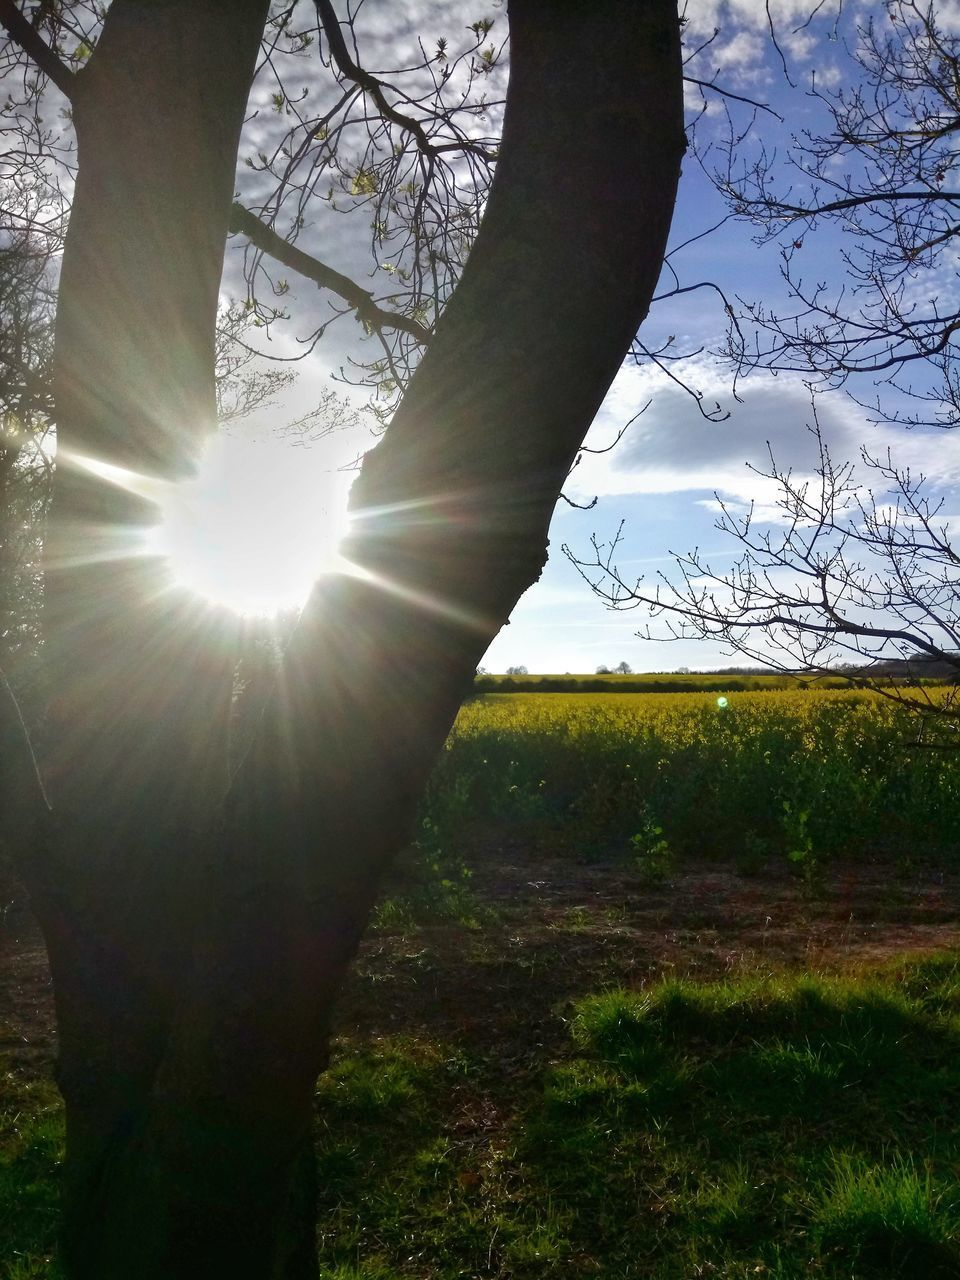 sunbeam, nature, sun, lens flare, sunlight, tree, field, grass, day, outdoors, growth, beauty in nature, sky, landscape, branch, plant, tree trunk, bare tree, no people, close-up